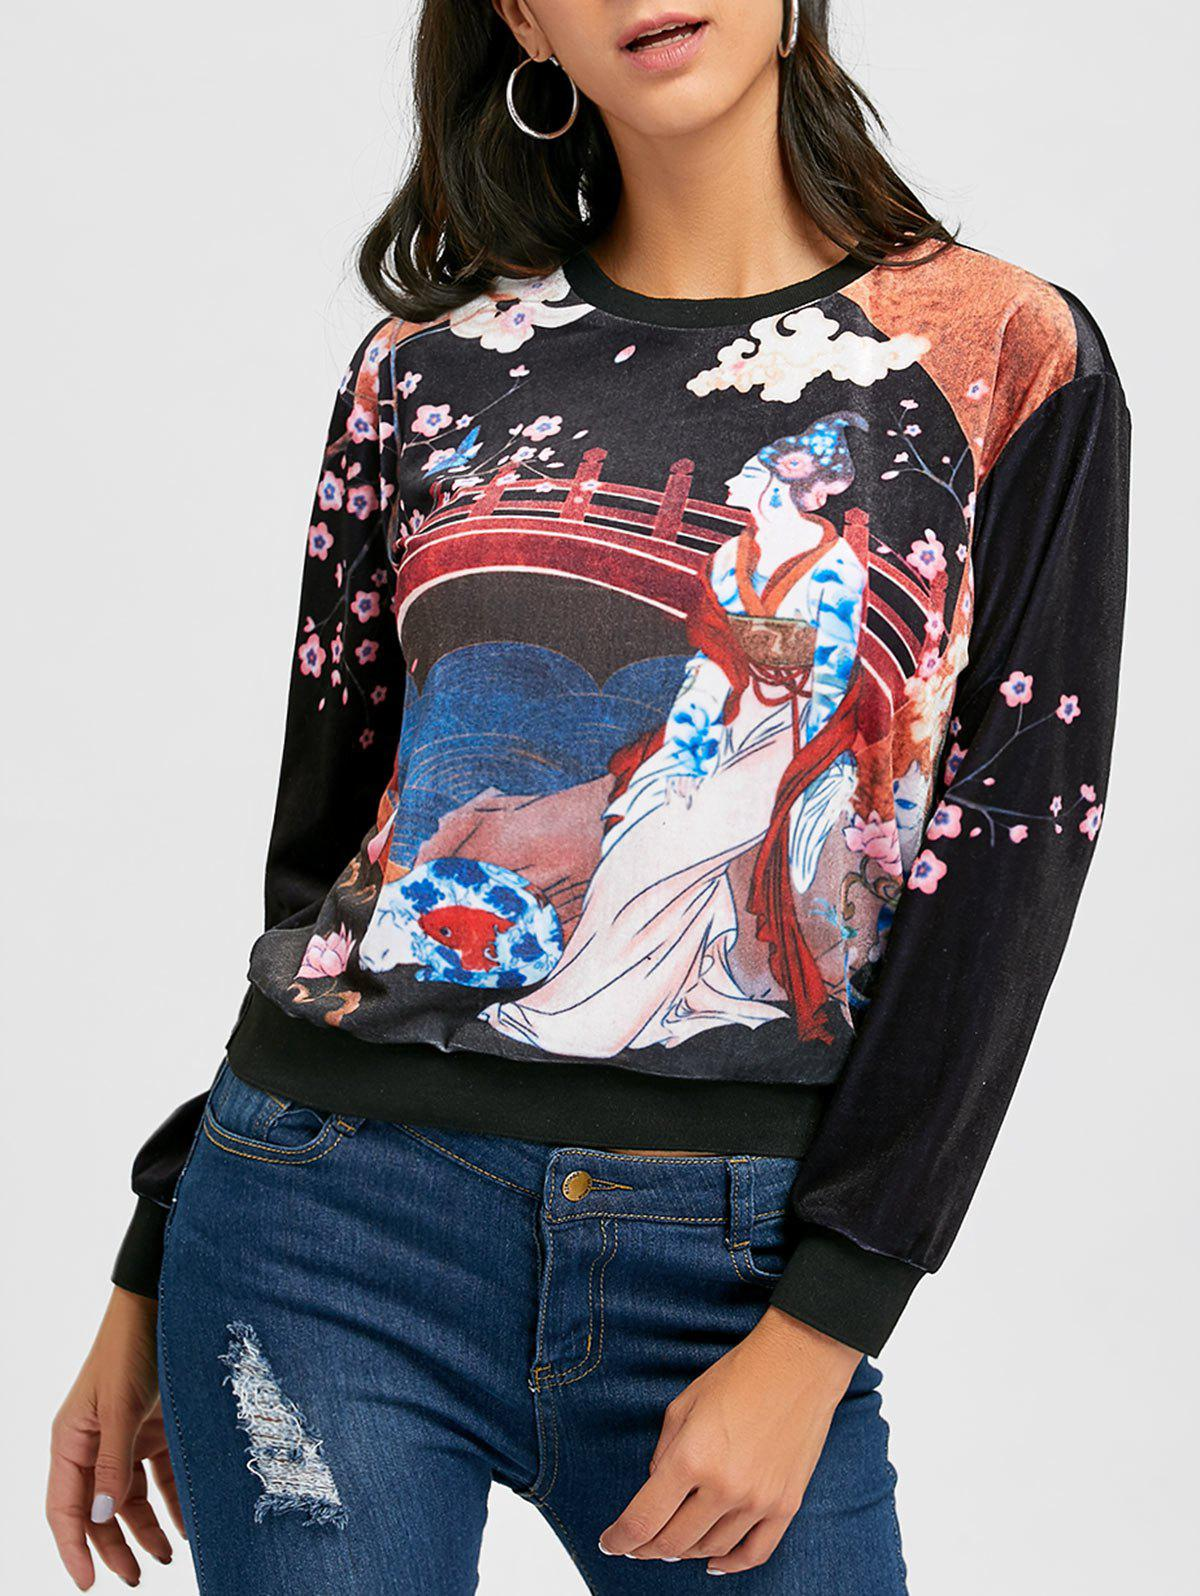 Crew Neck Printed Velvet Sweatshirt - BLACK S